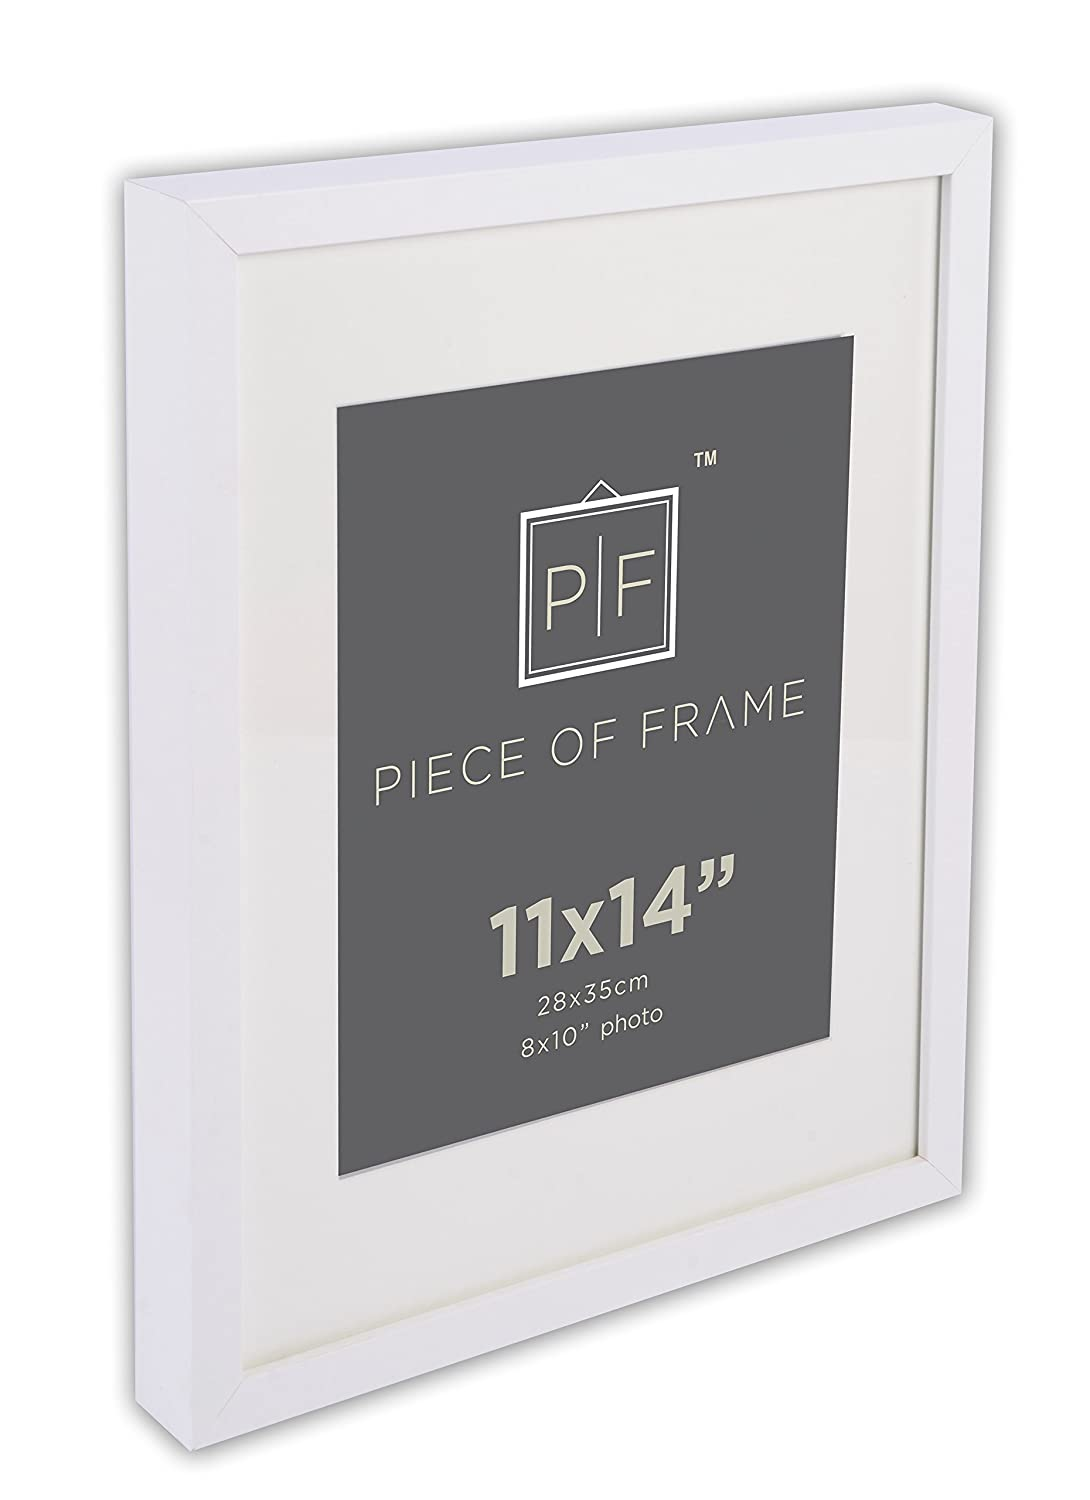 White MDFW1114M-01-SF0191 Golden State Art 11x14 Photo Frame for 8x10 Pictures with Ivory Color Mat /& Real Glass